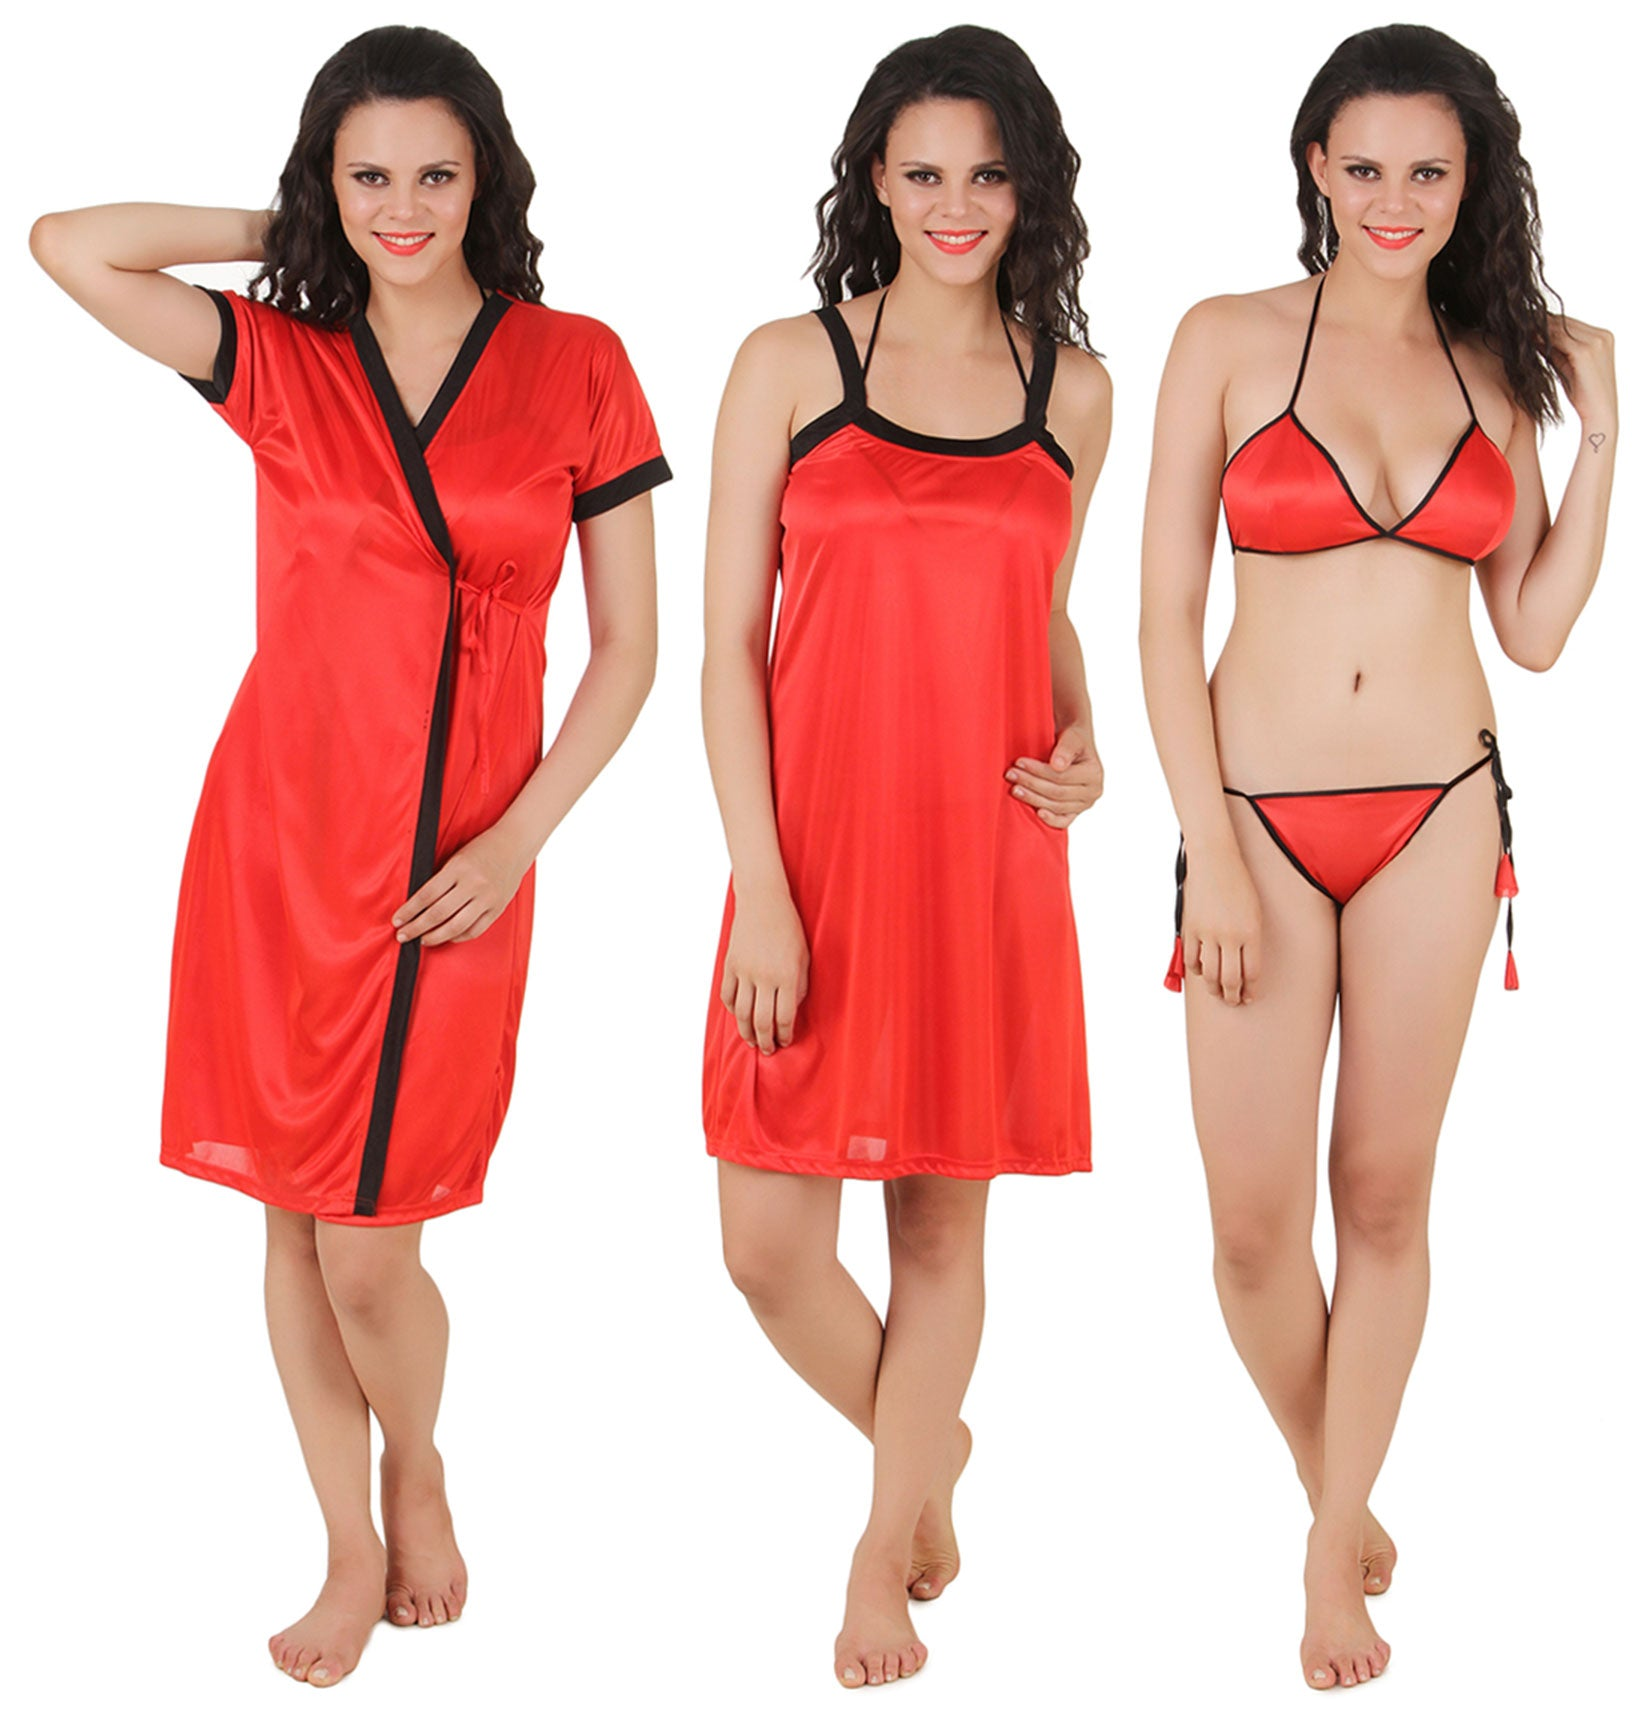 Fasense Satin 4 PCs Set, Nighty, Robe, Bra & Thong DP100 - fasensestore